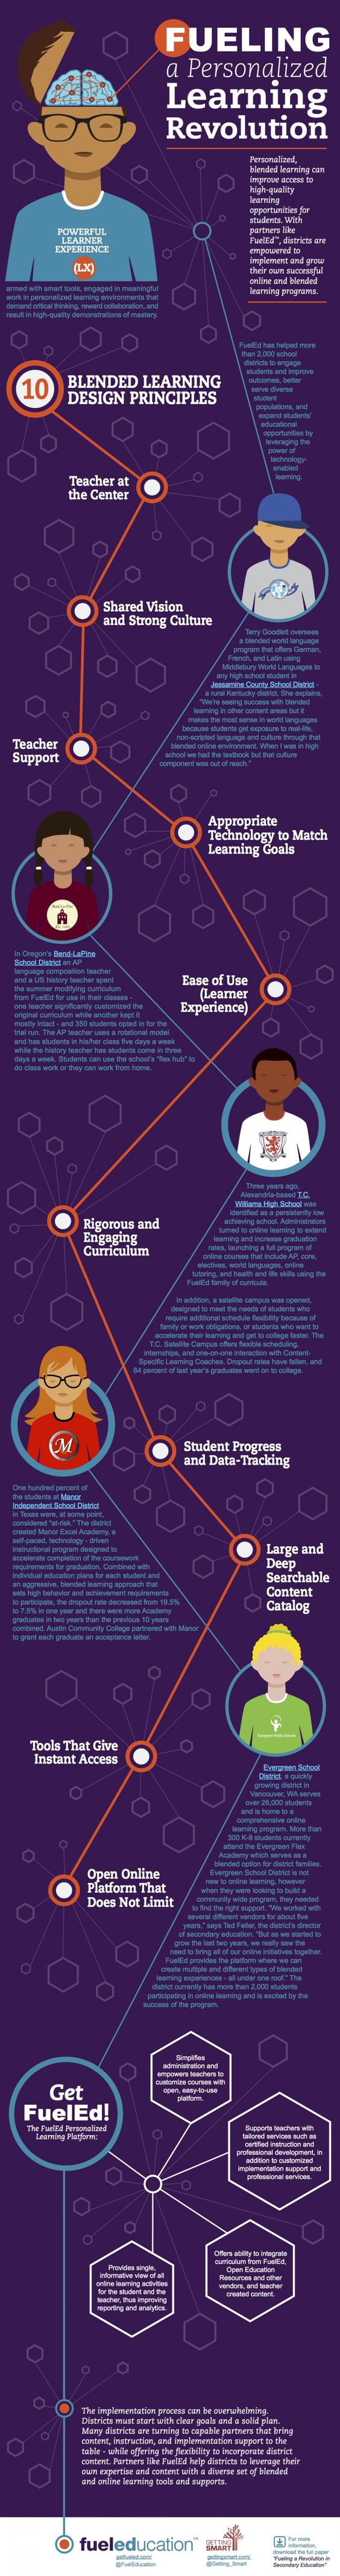 The Fueling a Personalized Blended Learning Revolution Infographic examines how personalized, blended learning can improve access to high-qu...